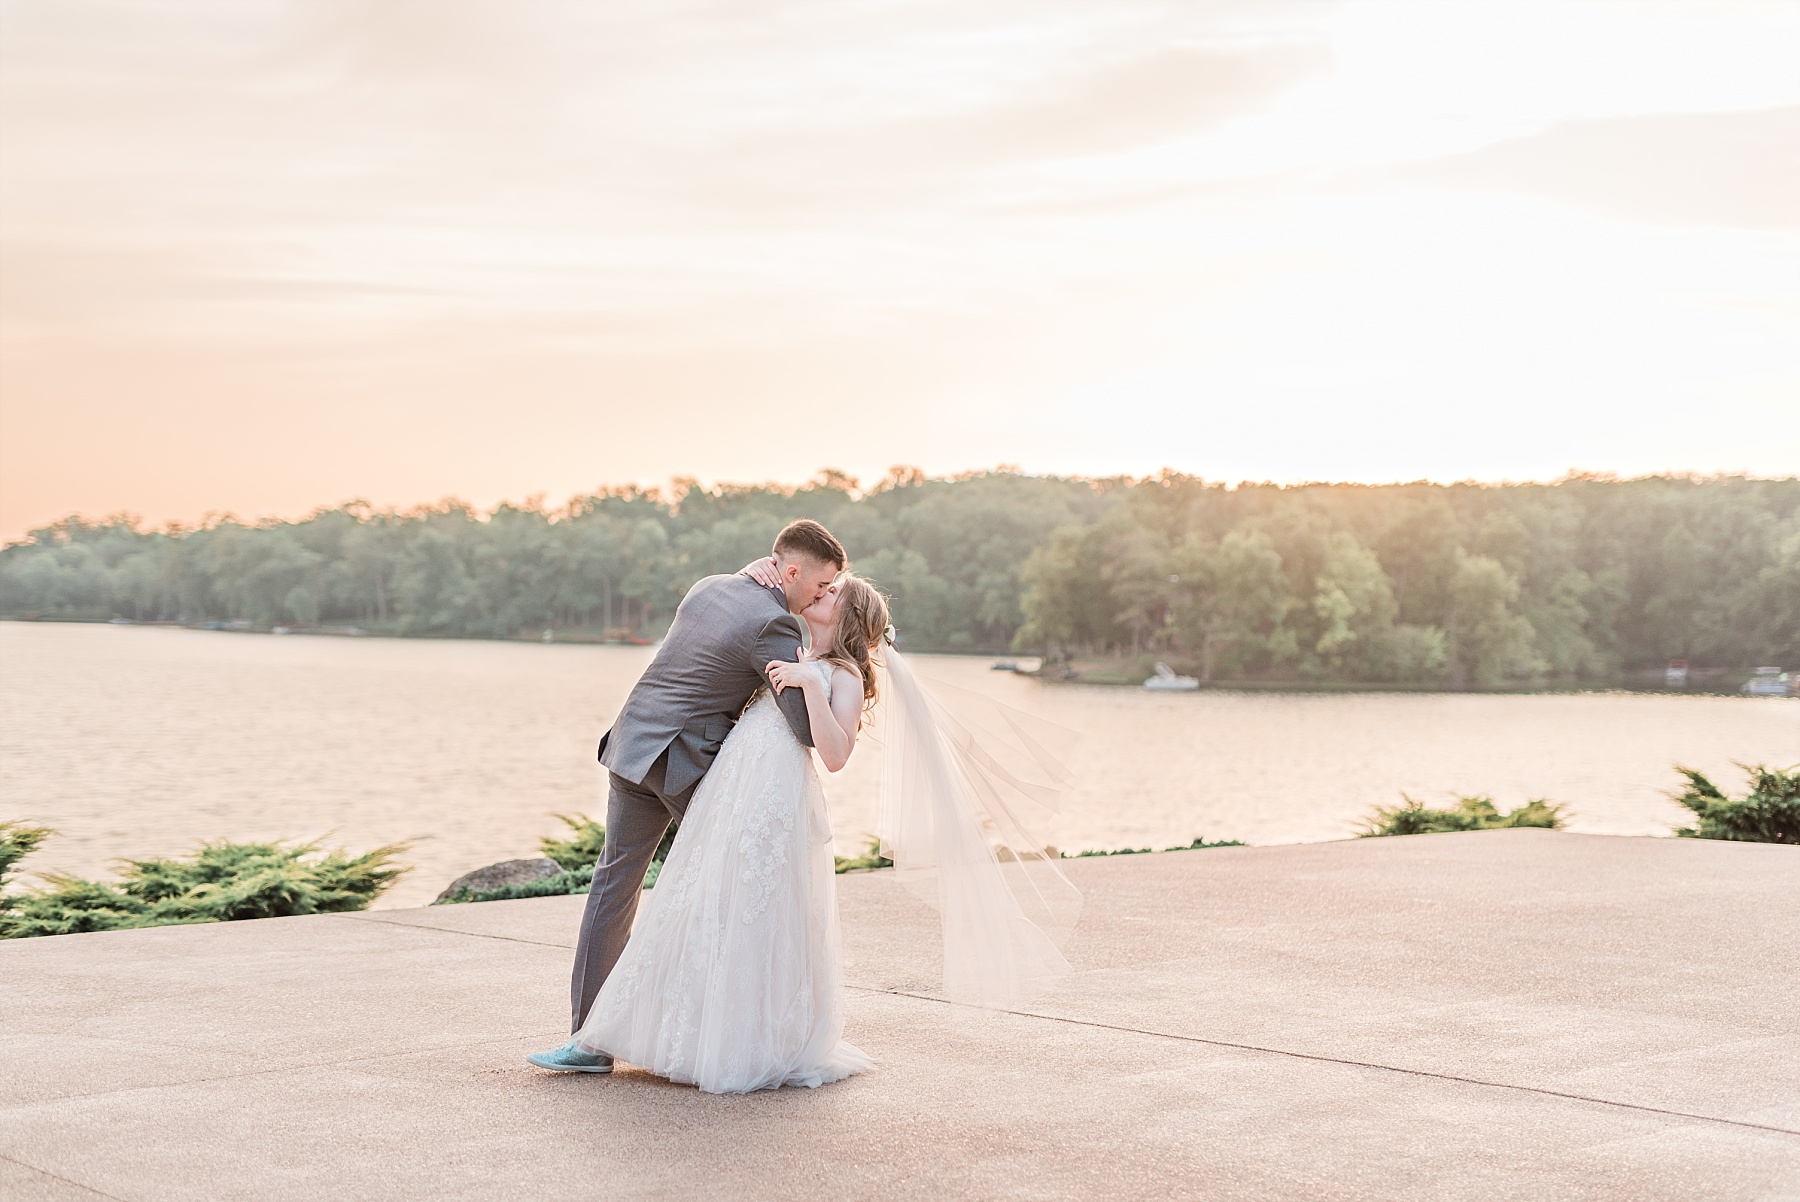 Lavender Hues at Summer Wedding at Innsbrook Resort by Kelsi Kliethermes Photography St. Louis Wedding Photographer_0045.jpg